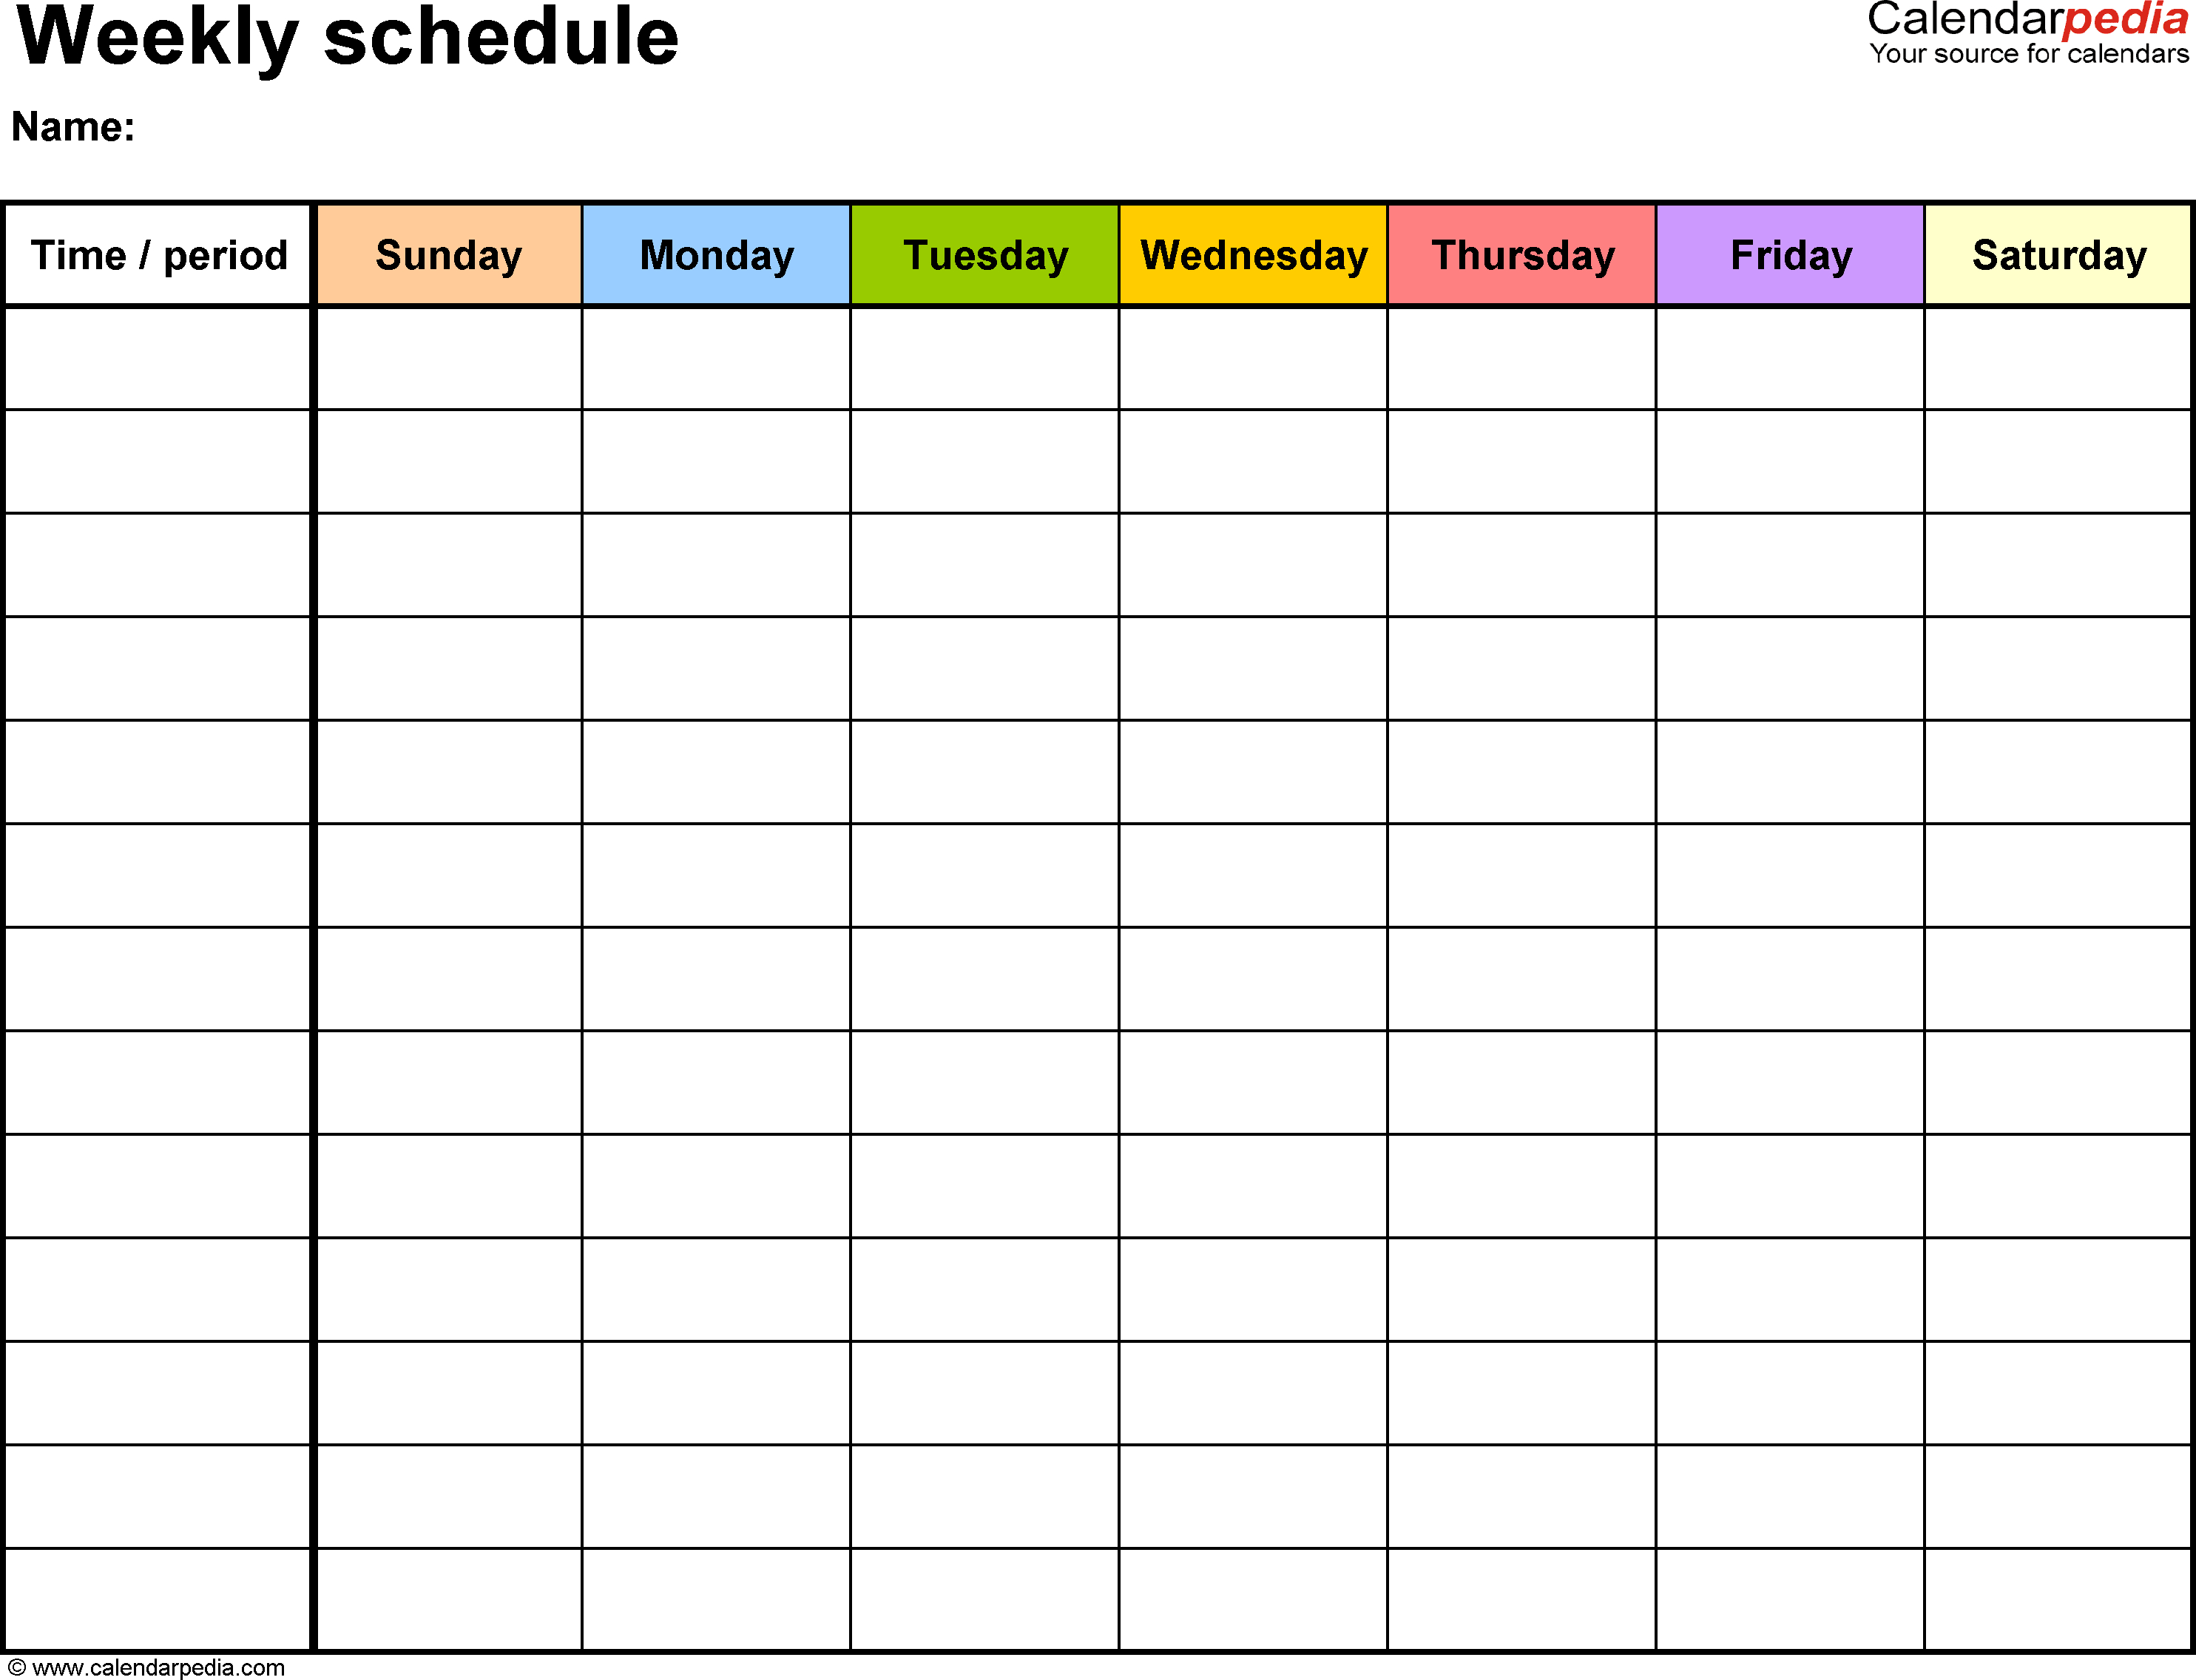 Free Weekly Schedule Templates For Excel - 18 Templates pertaining to Kid Days Of The Week Calendar Template